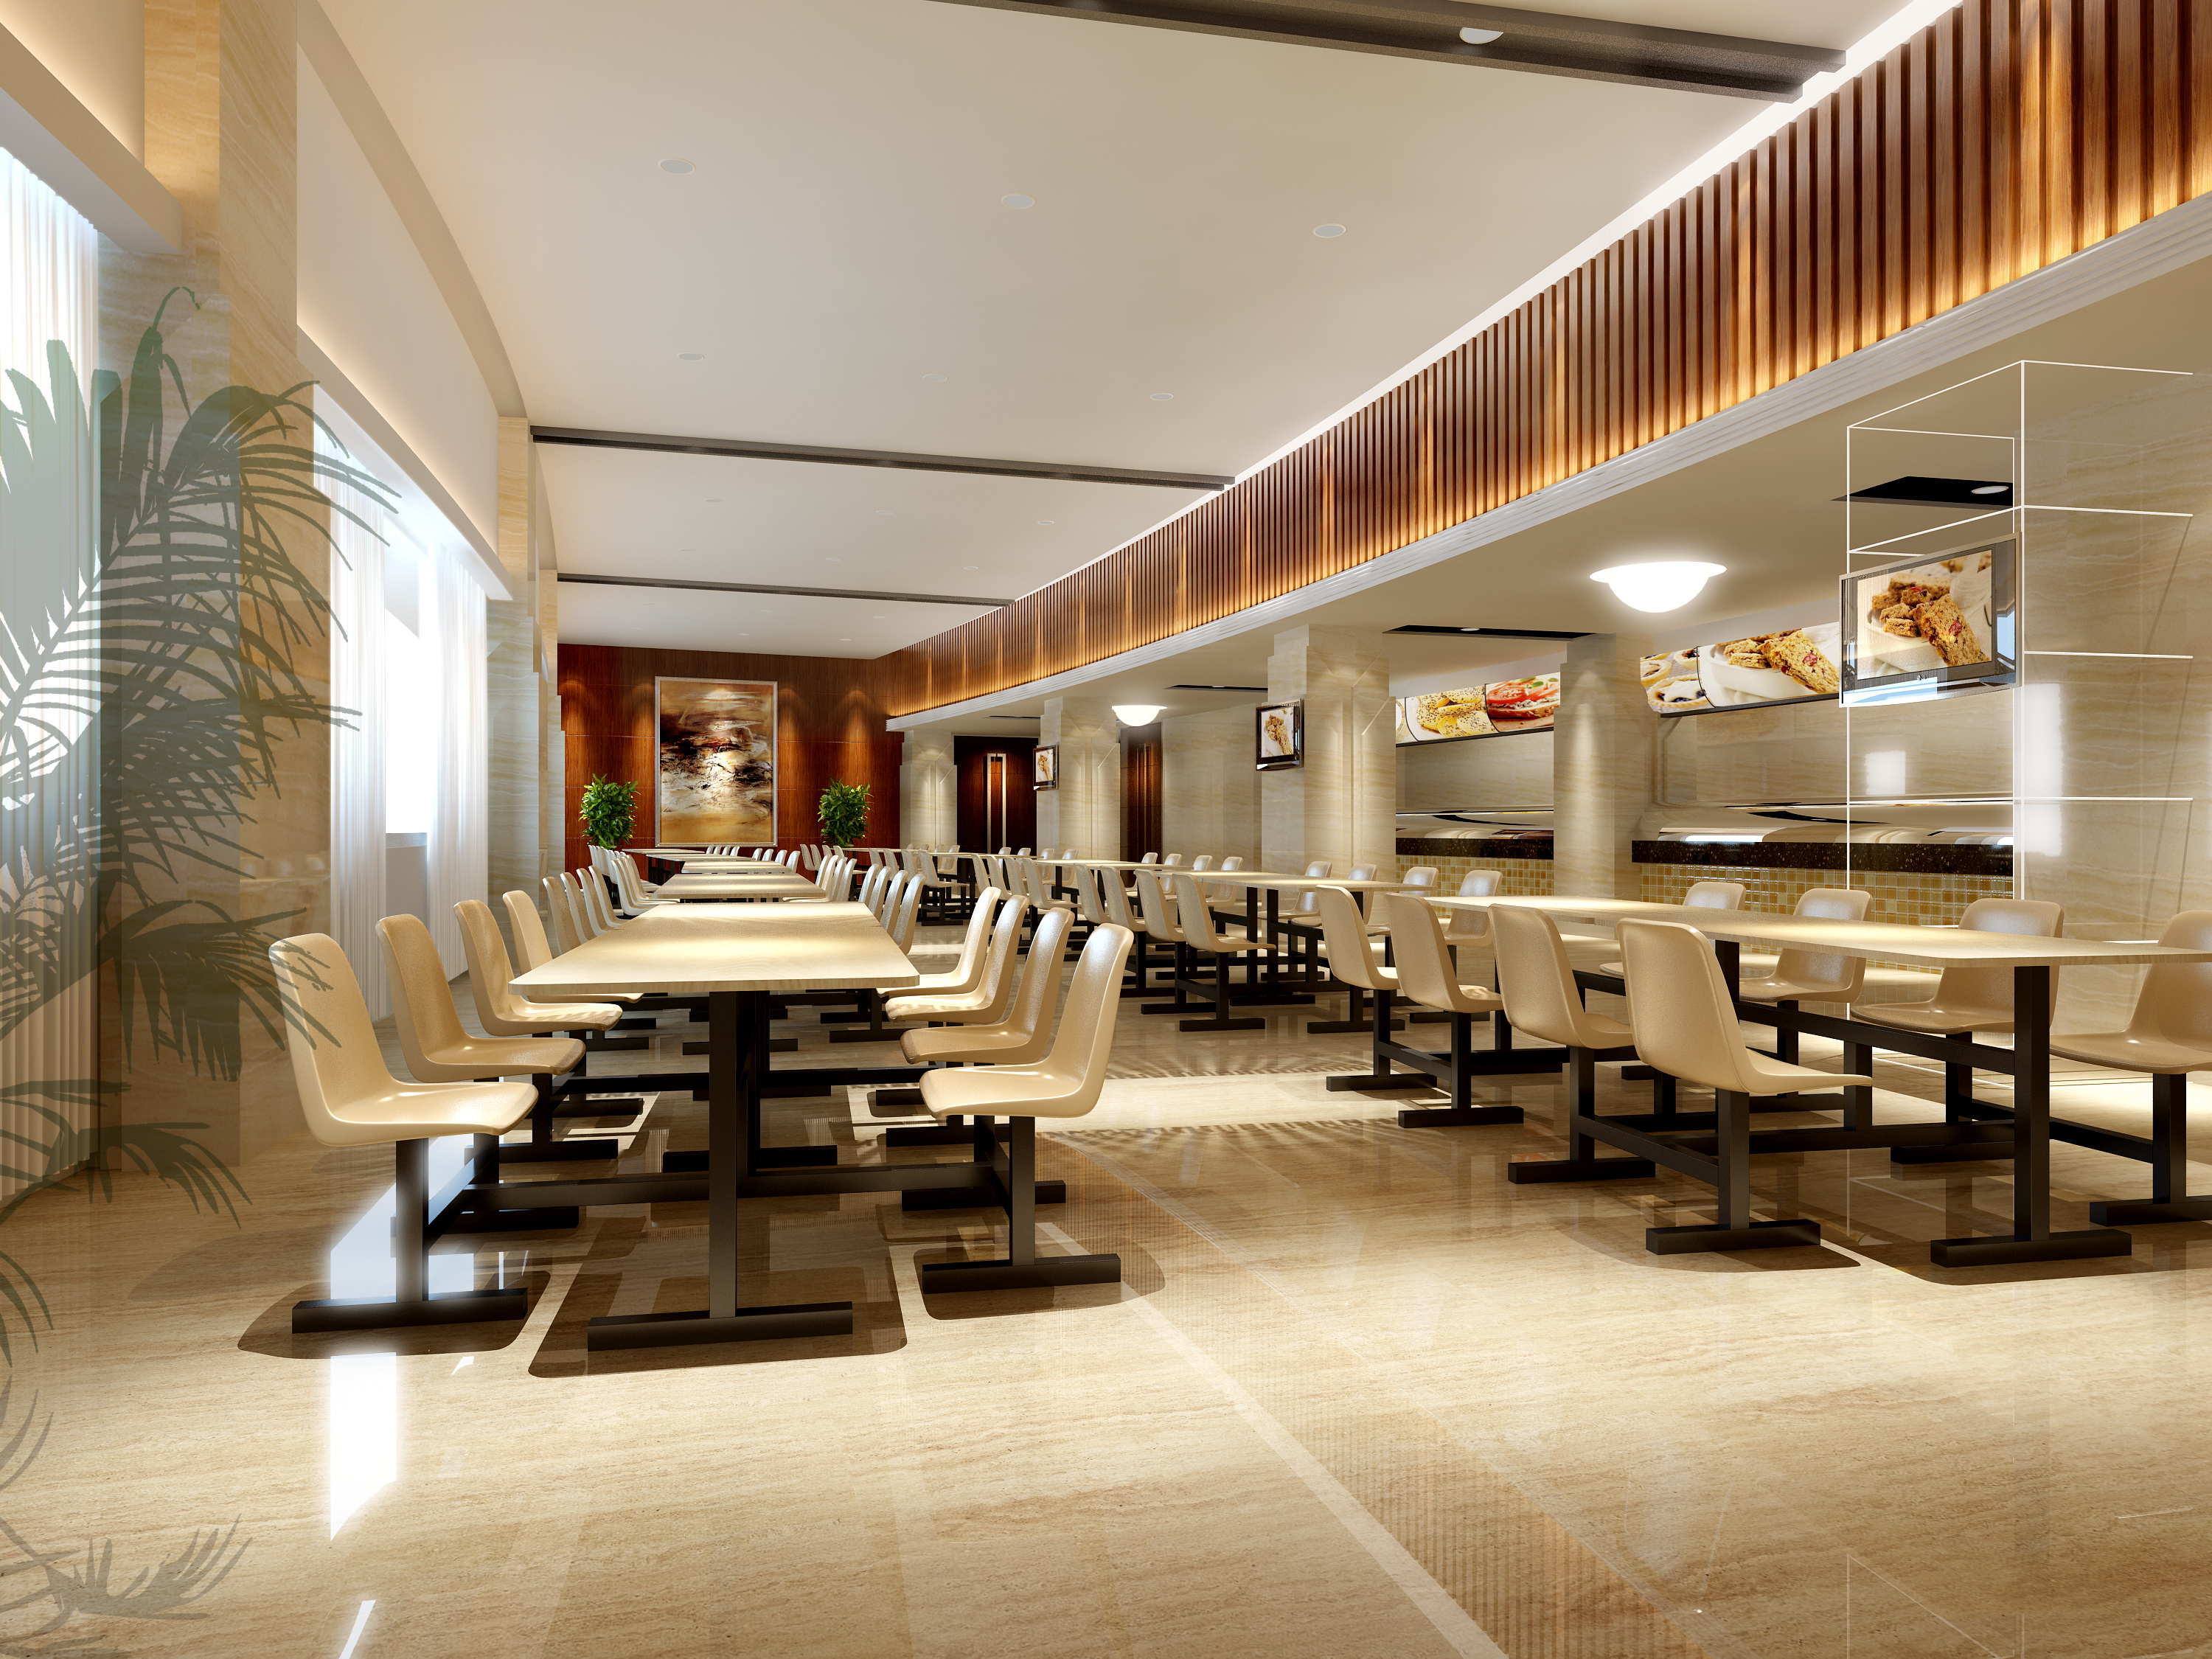 Restaurant with state of the art interior d model max